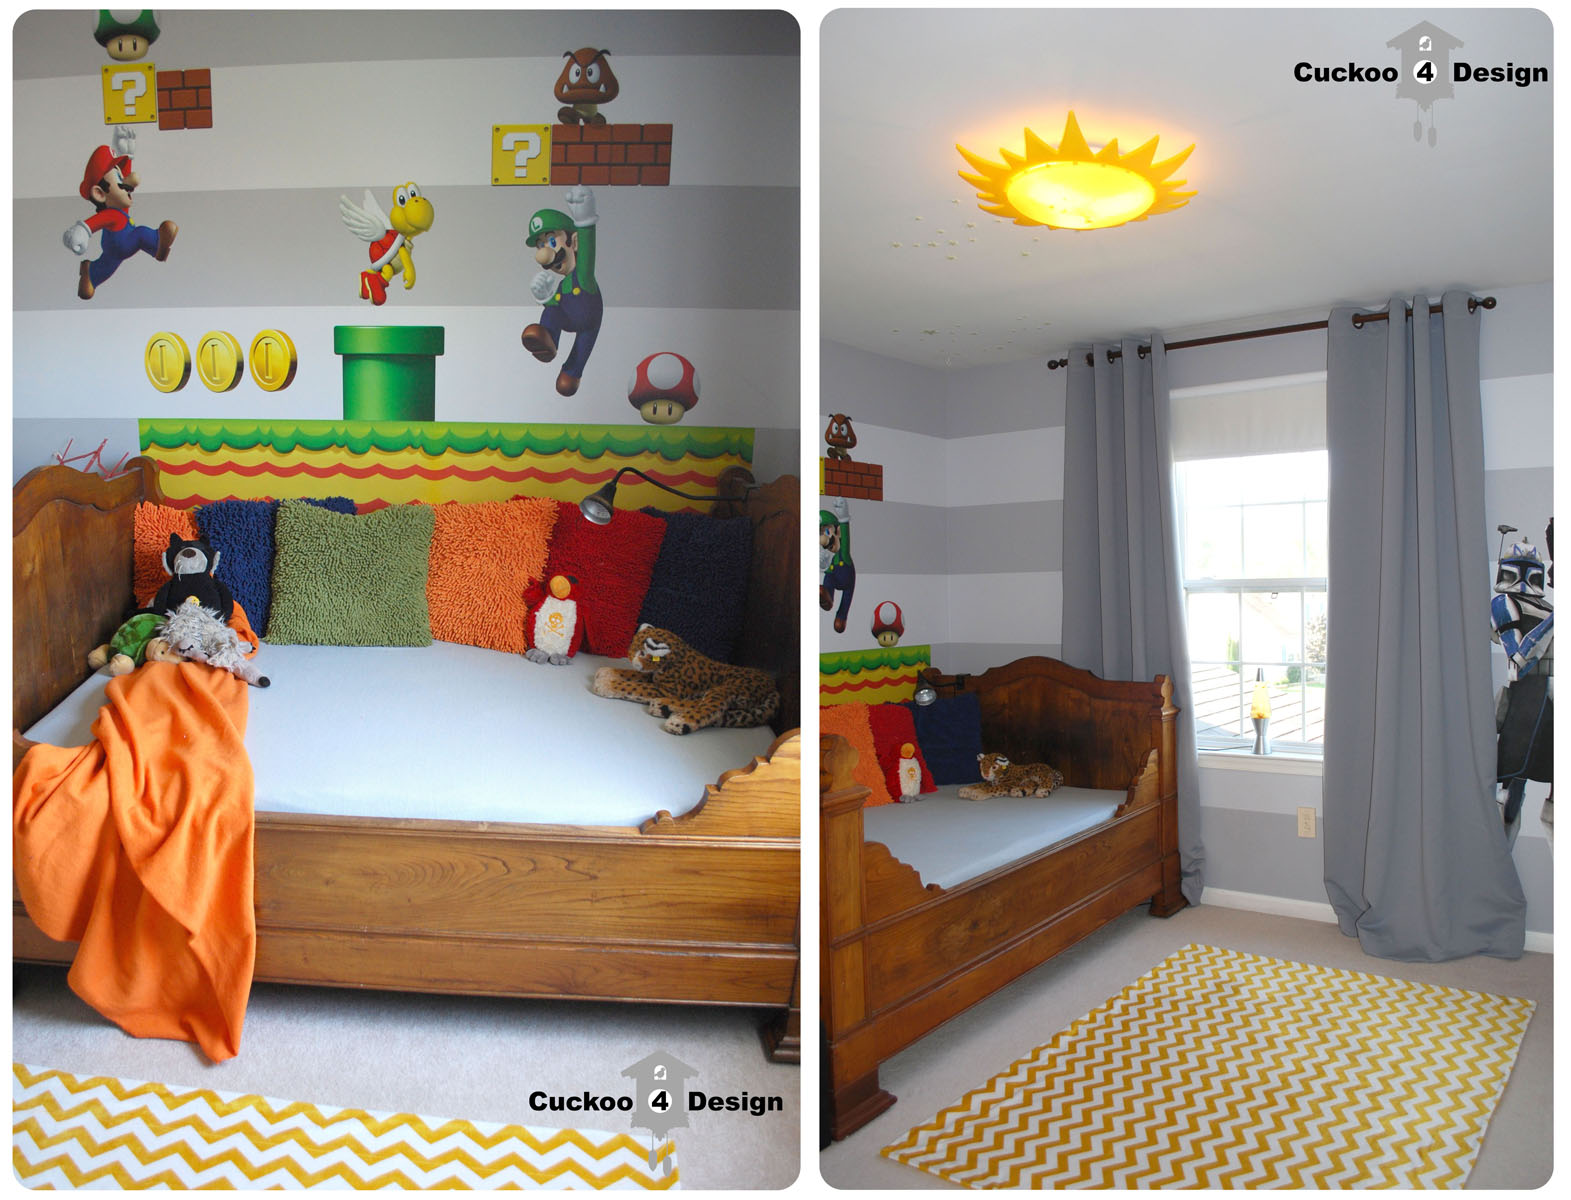 Mario Brothers Room Idea Cuckoo4design: 5 year old boy room decoration